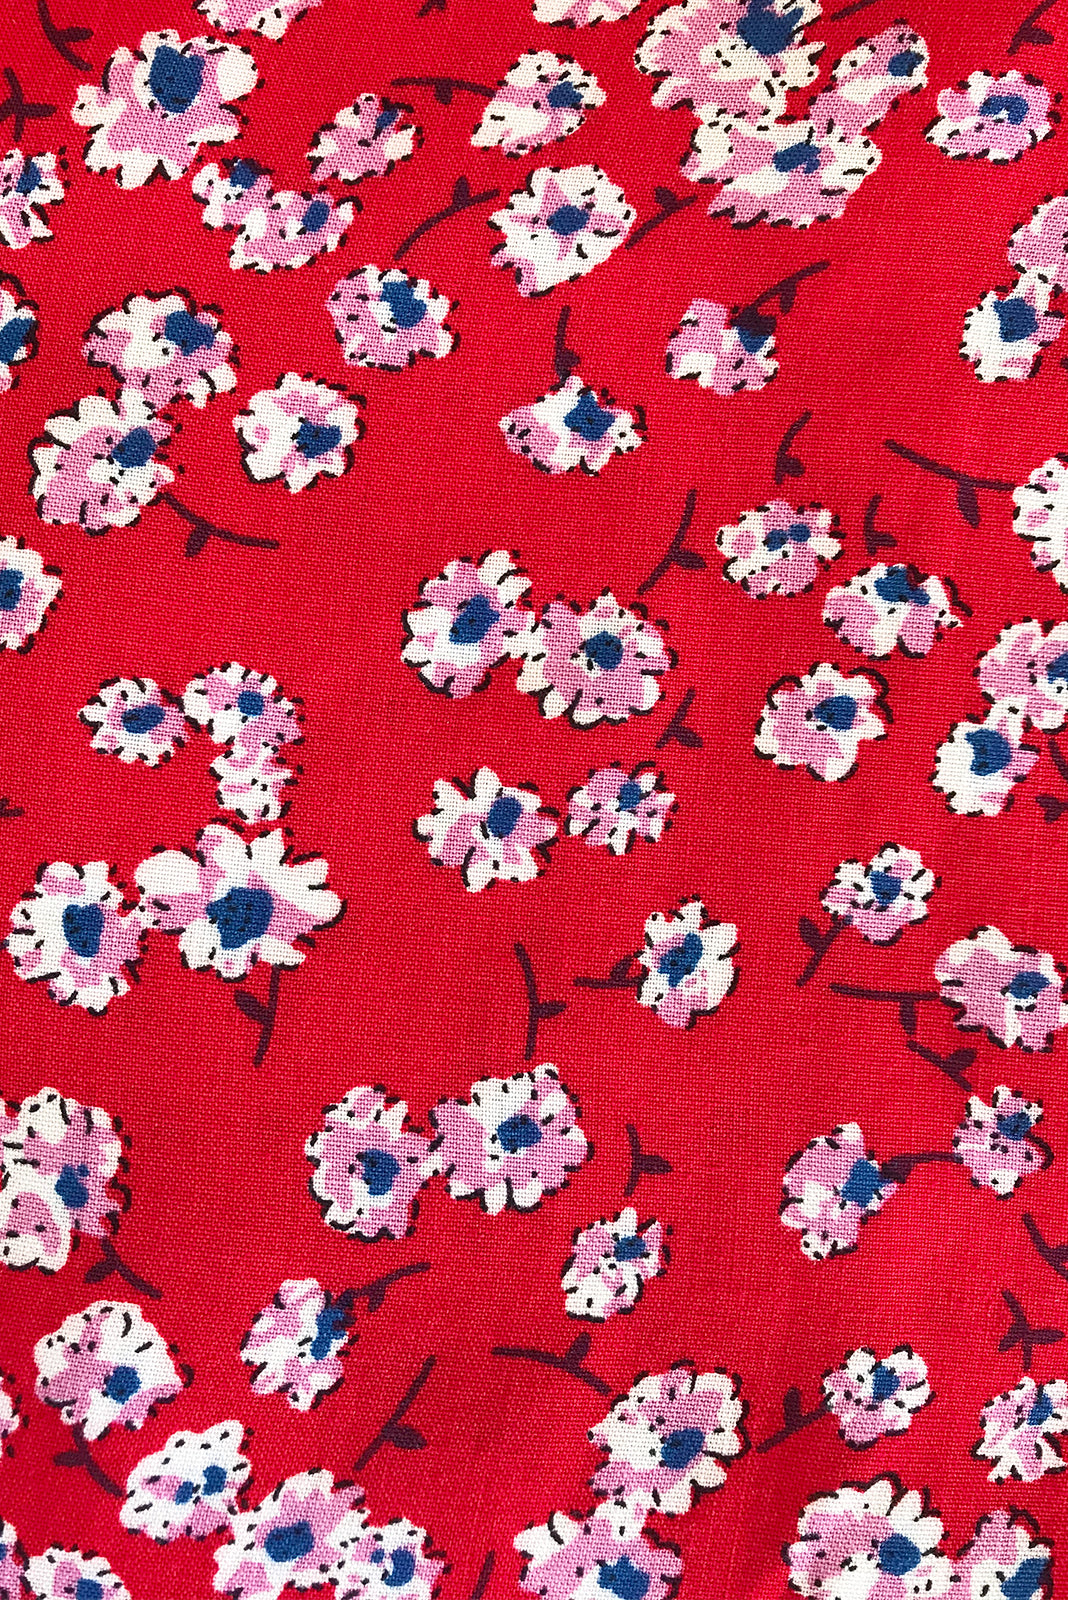 Fabric Swatch of  Day Tripper Real Red Top featuring 100% viscose in red base with small flowers.